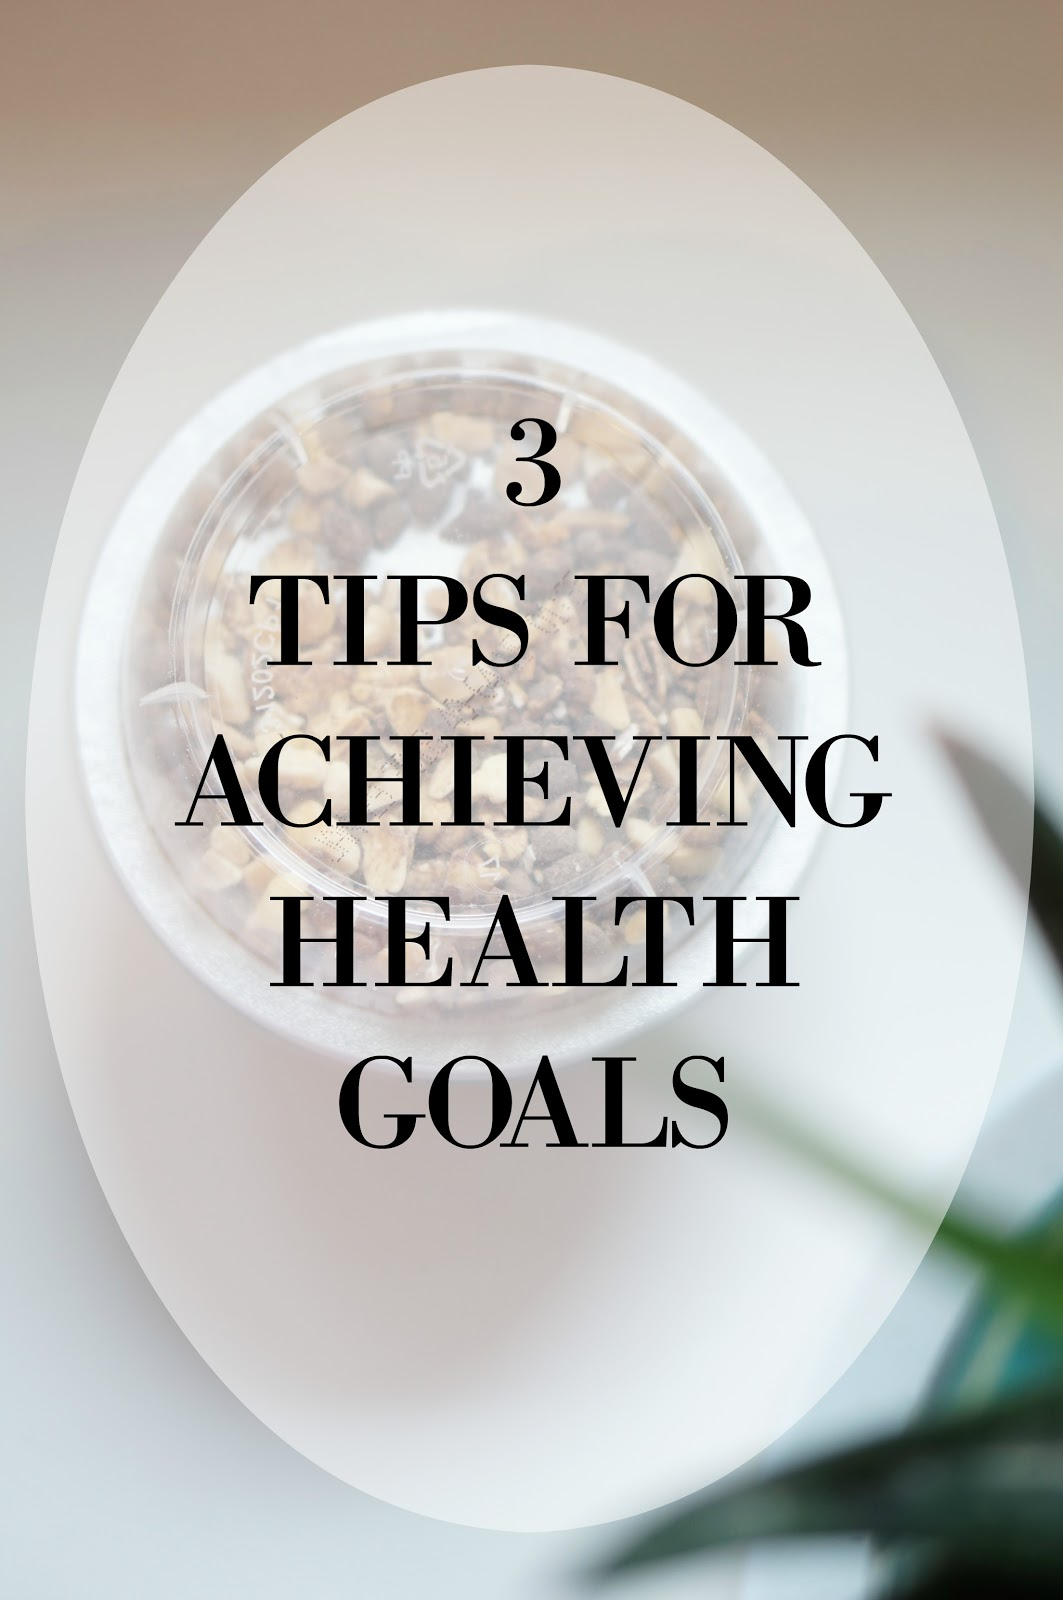 3 WAYS TO STAY ON TRACK WITH HEALTH GOALS by popular North Carolina lifestyle blogger Rebecca Lately